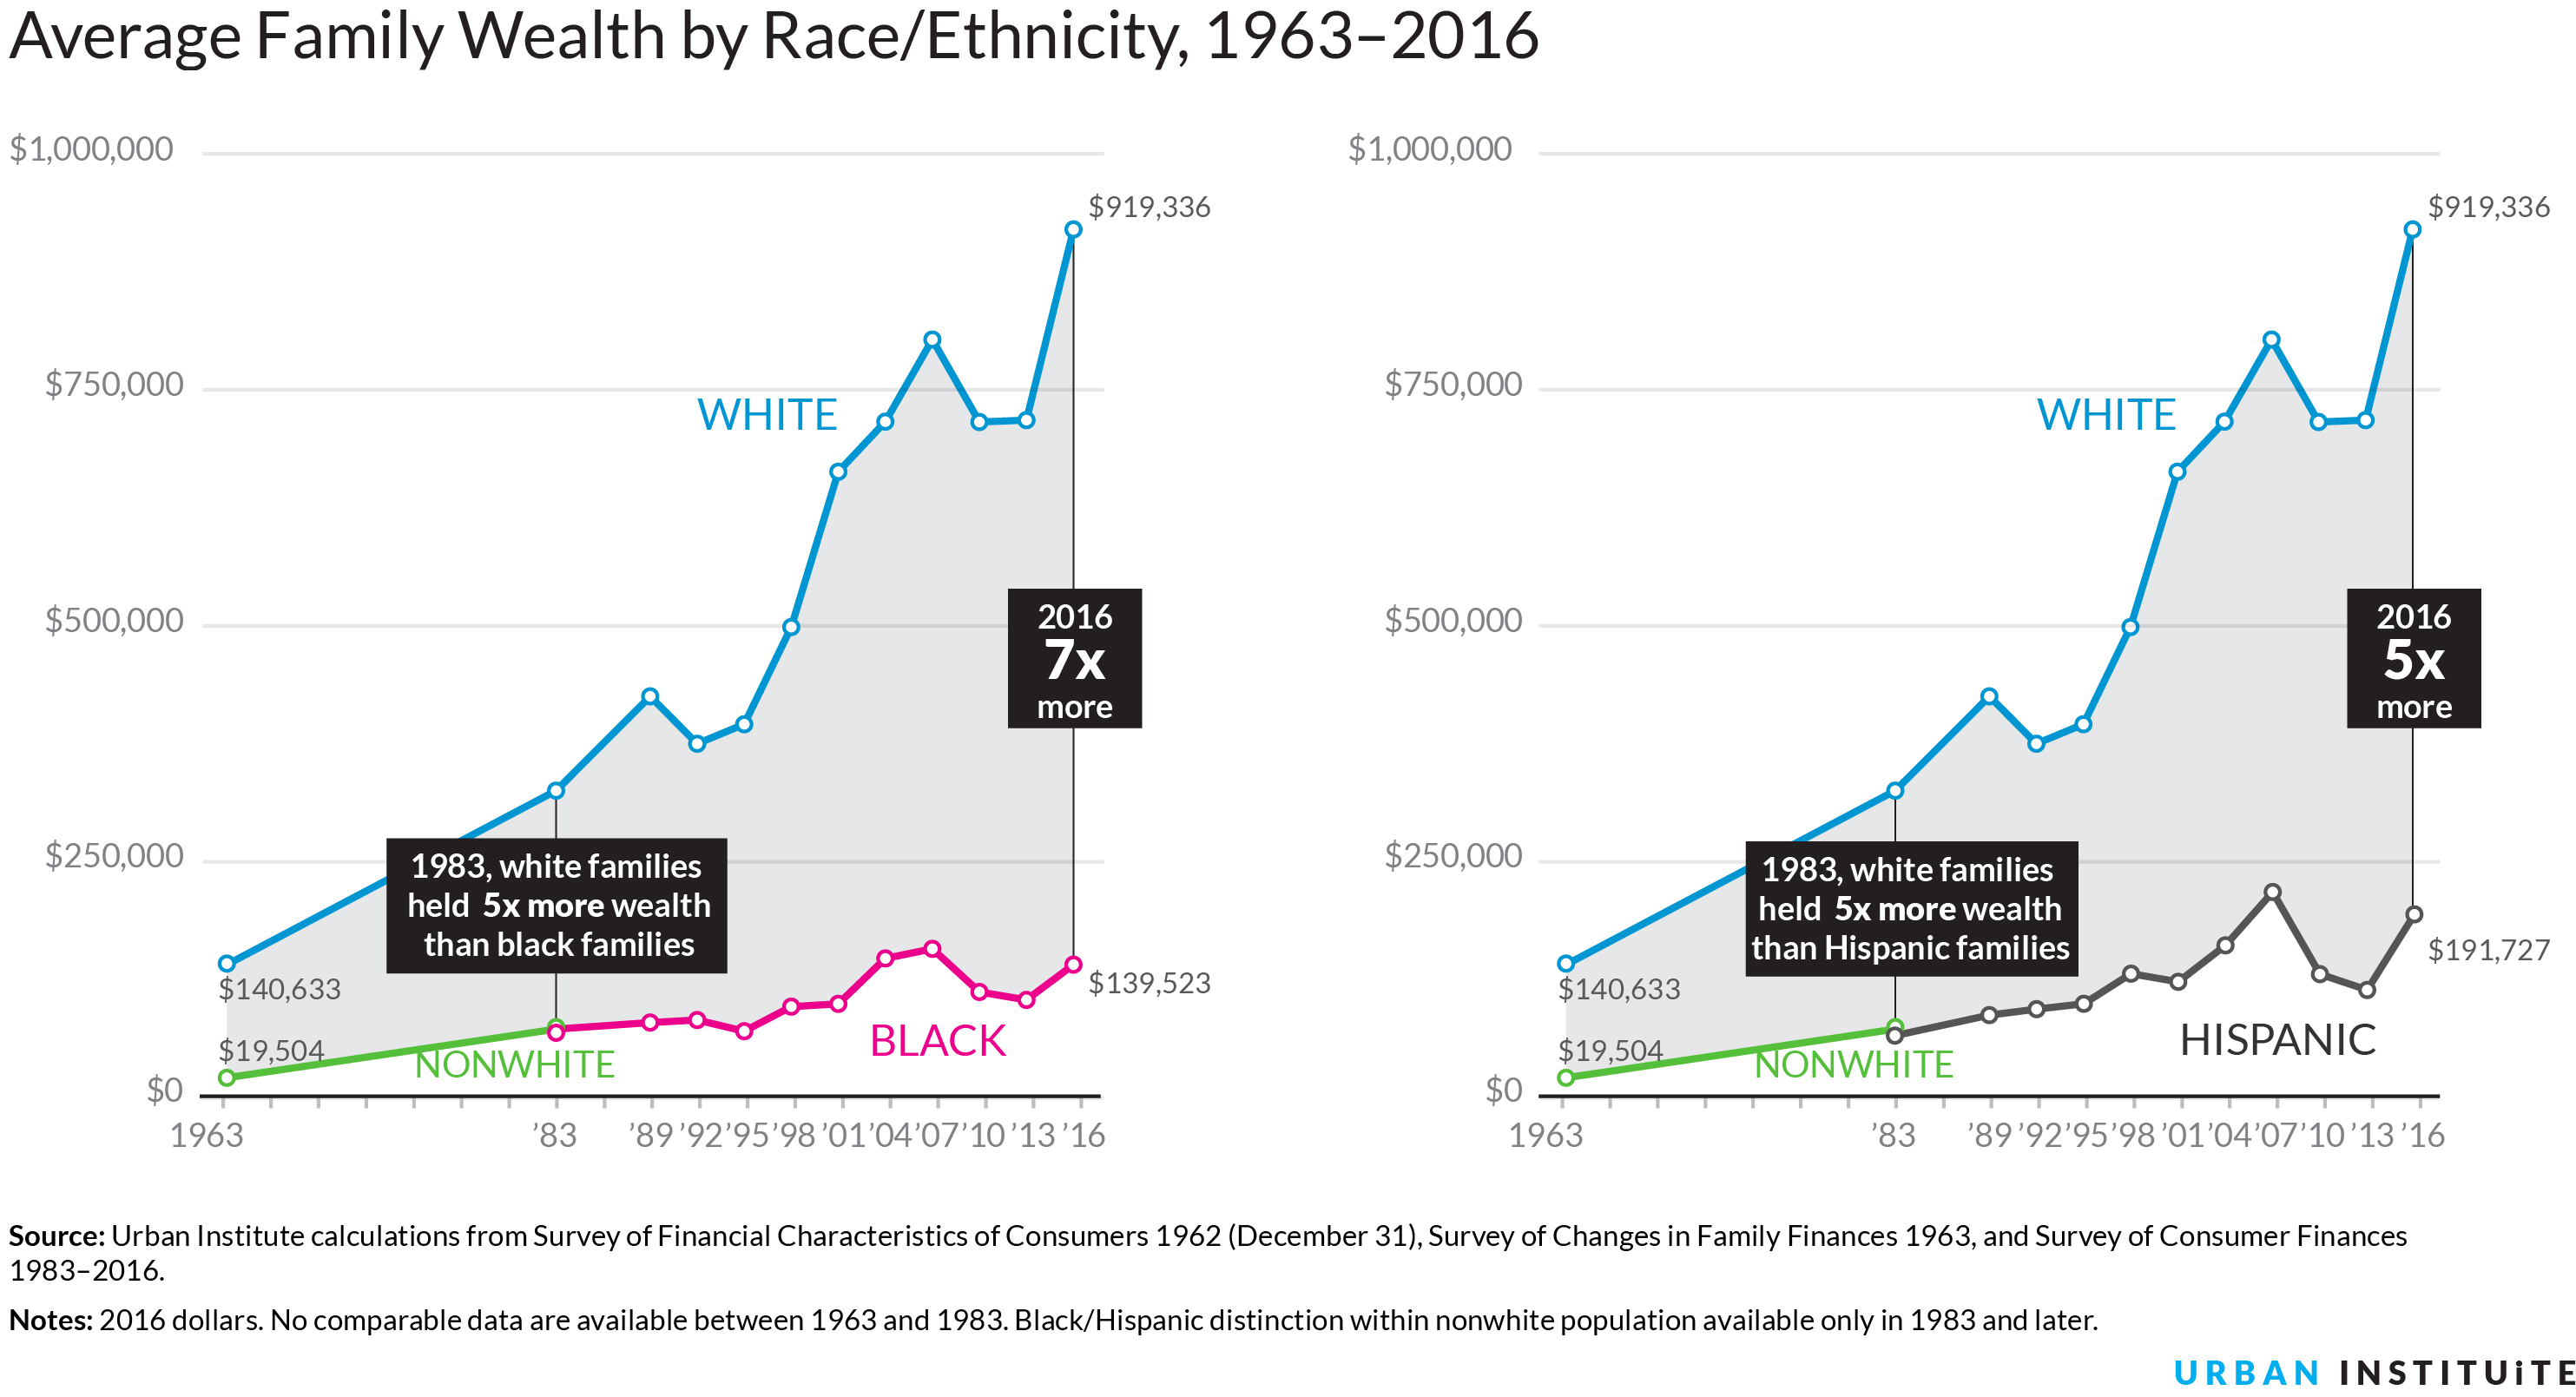 Created With Highcharts 7 1 Median Family Wealth By Race Ethnicity 1963 2016 White Black Hispanic Nonwhite 1992 1998 2004 2010 0 50 000 100